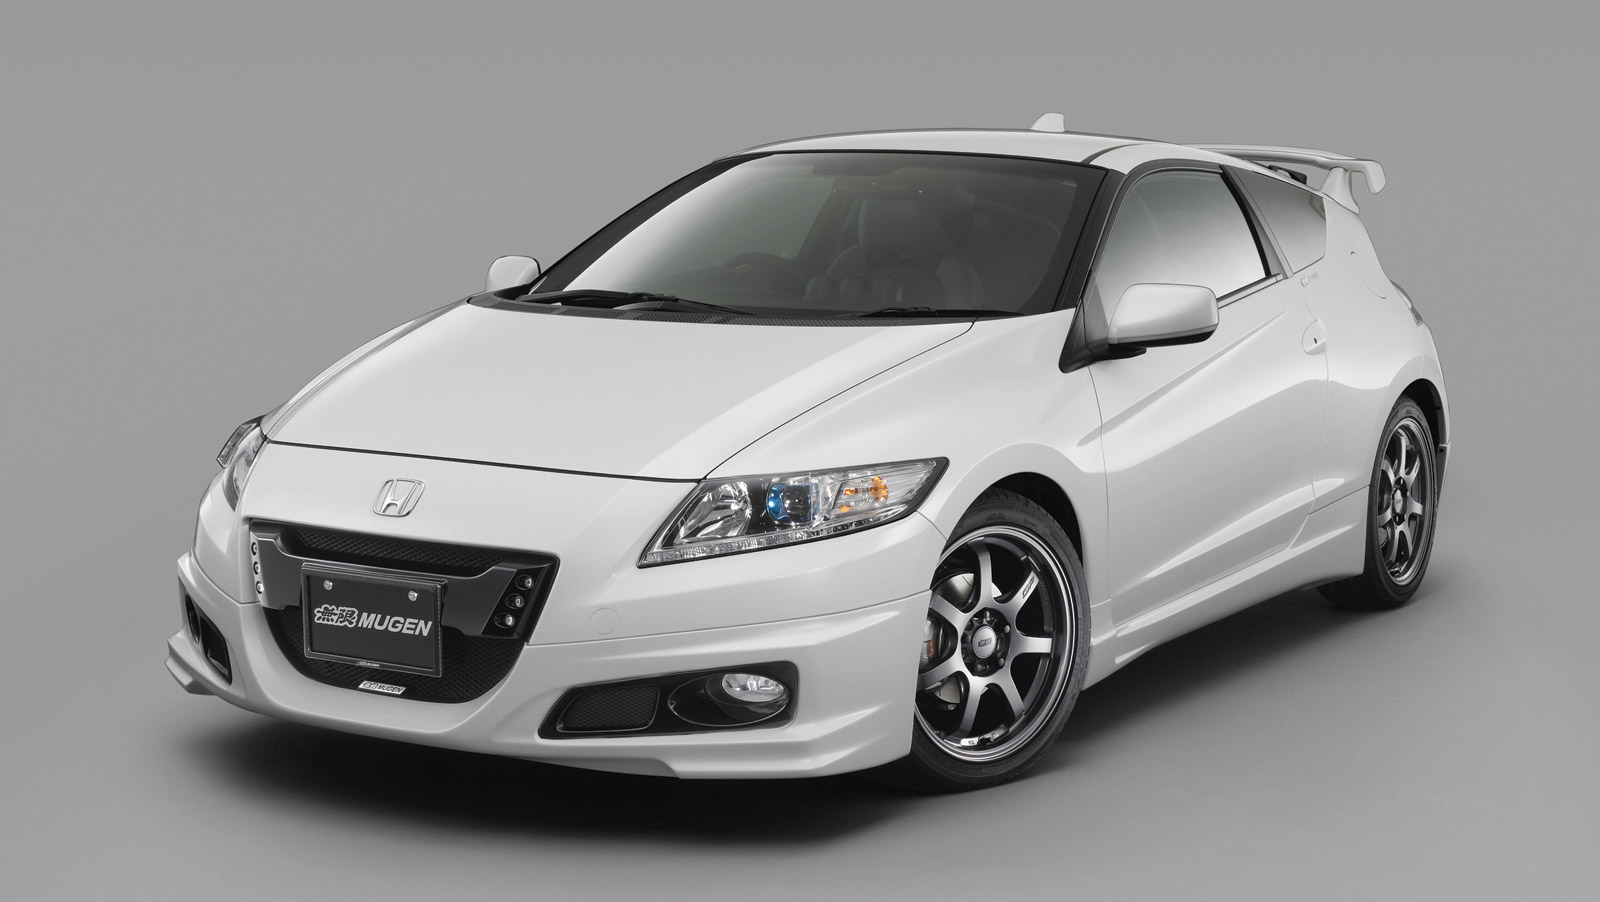 mugen enhanced honda cr z icf goes on sale in uk. Black Bedroom Furniture Sets. Home Design Ideas